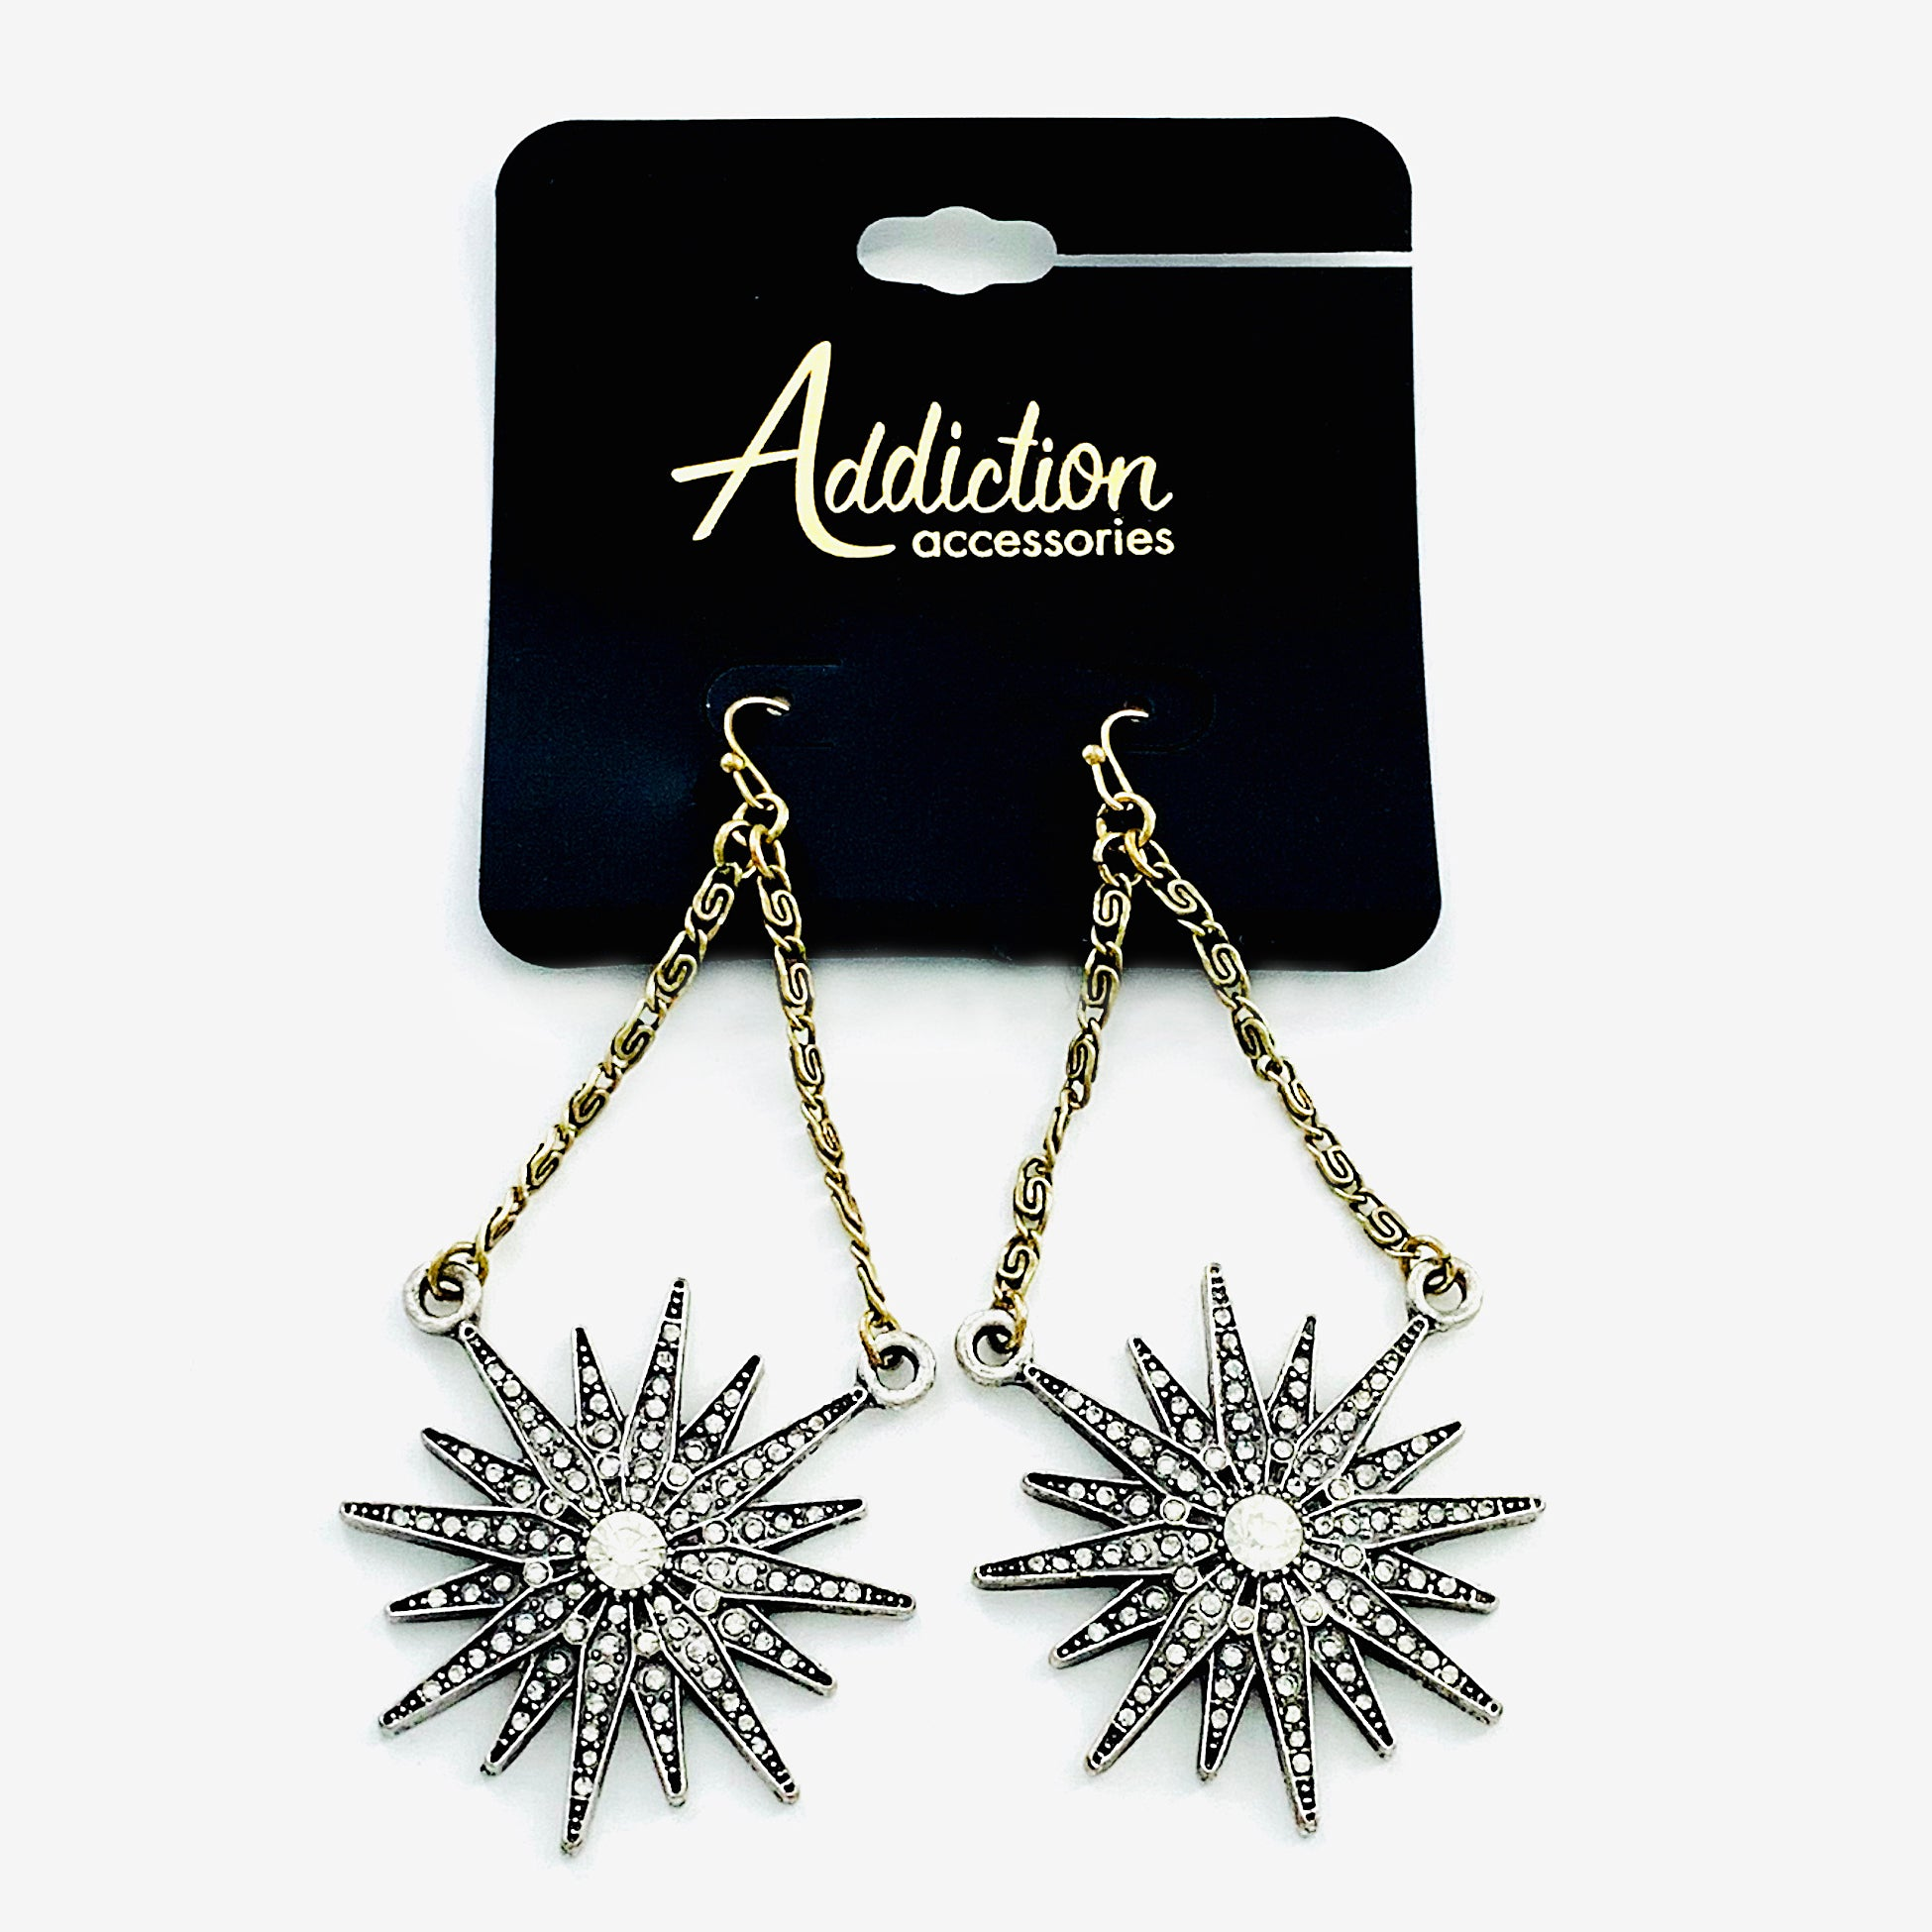 Starry starburst earrings with diamante stones